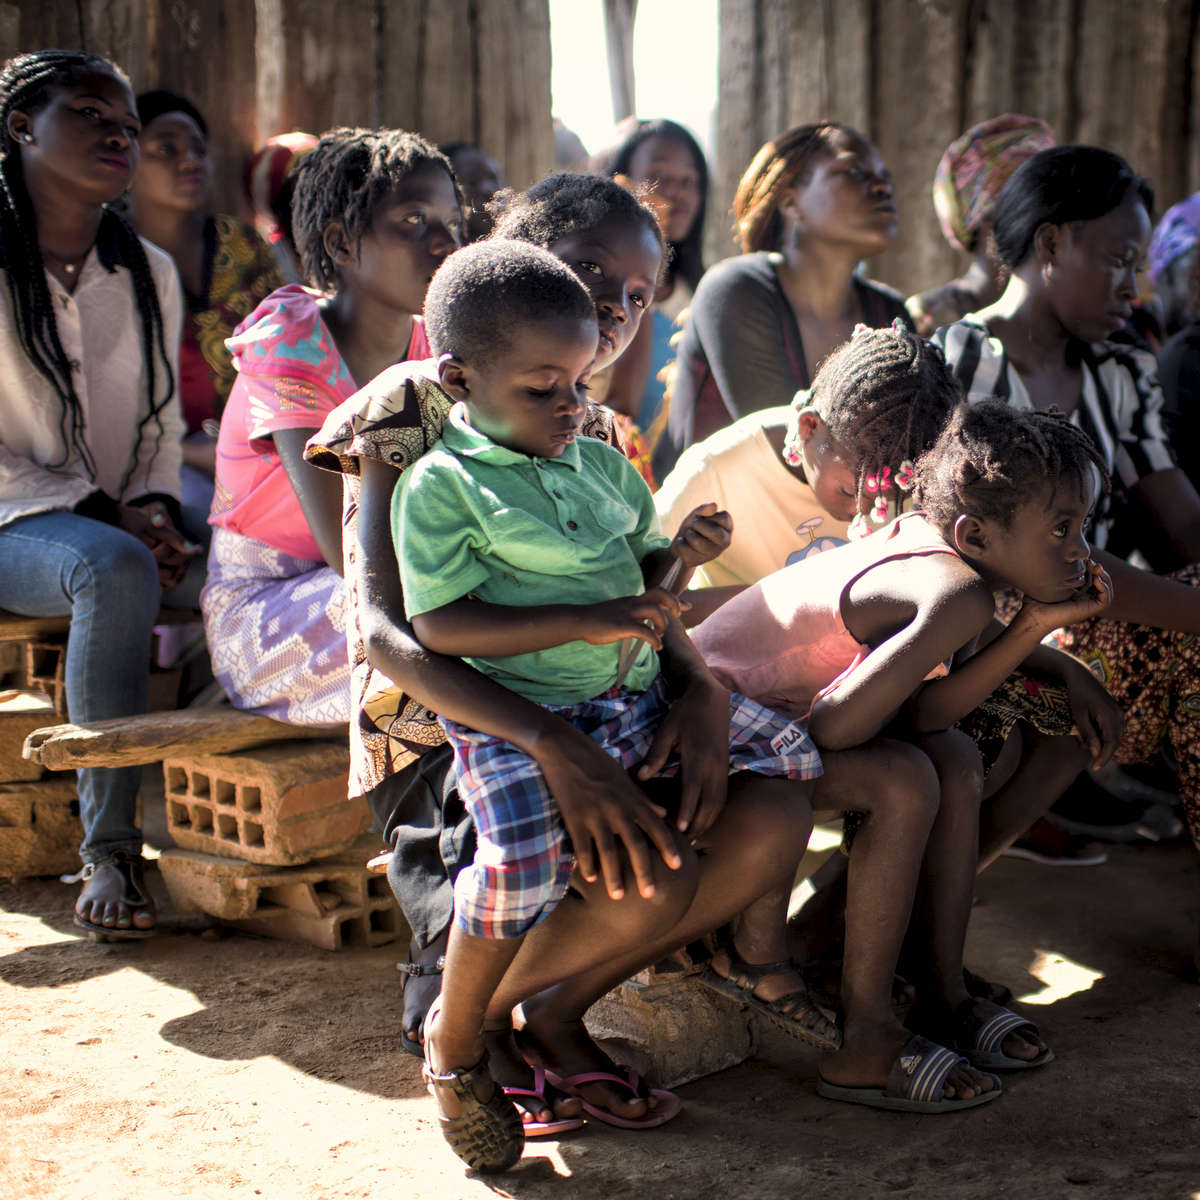 May 6, 2018: KANENGUERERE, ANGOLA - Four year-old Maxi sits on his older sister Regina's lap during church services in Kanenguerere village on Sunday morning. The HALO team has Sundays off, so the day is spent going to church, relaxing, and getting caught up on work.  The village is very small, so the HALO women make up the bulk of the worshippers and have set up a church committee to help out with the church affairs, while still offering a place of respect to the women of the village.  These deminers are working under extremely difficult circumstances in Kanenguerere.  Not only is extremely hot - with snakes and scorpions common - but much of the mined area is on the side of an extremely steep hill, making every step dangerous. The area was mined during the civil war by government forces to protect the nearby railway line that can be seen in the background, as well as various troop positions. It is currently used by roughly 170 people including village residents and nomadic herders - many of whom are young children - who pass through uncleared land every day.